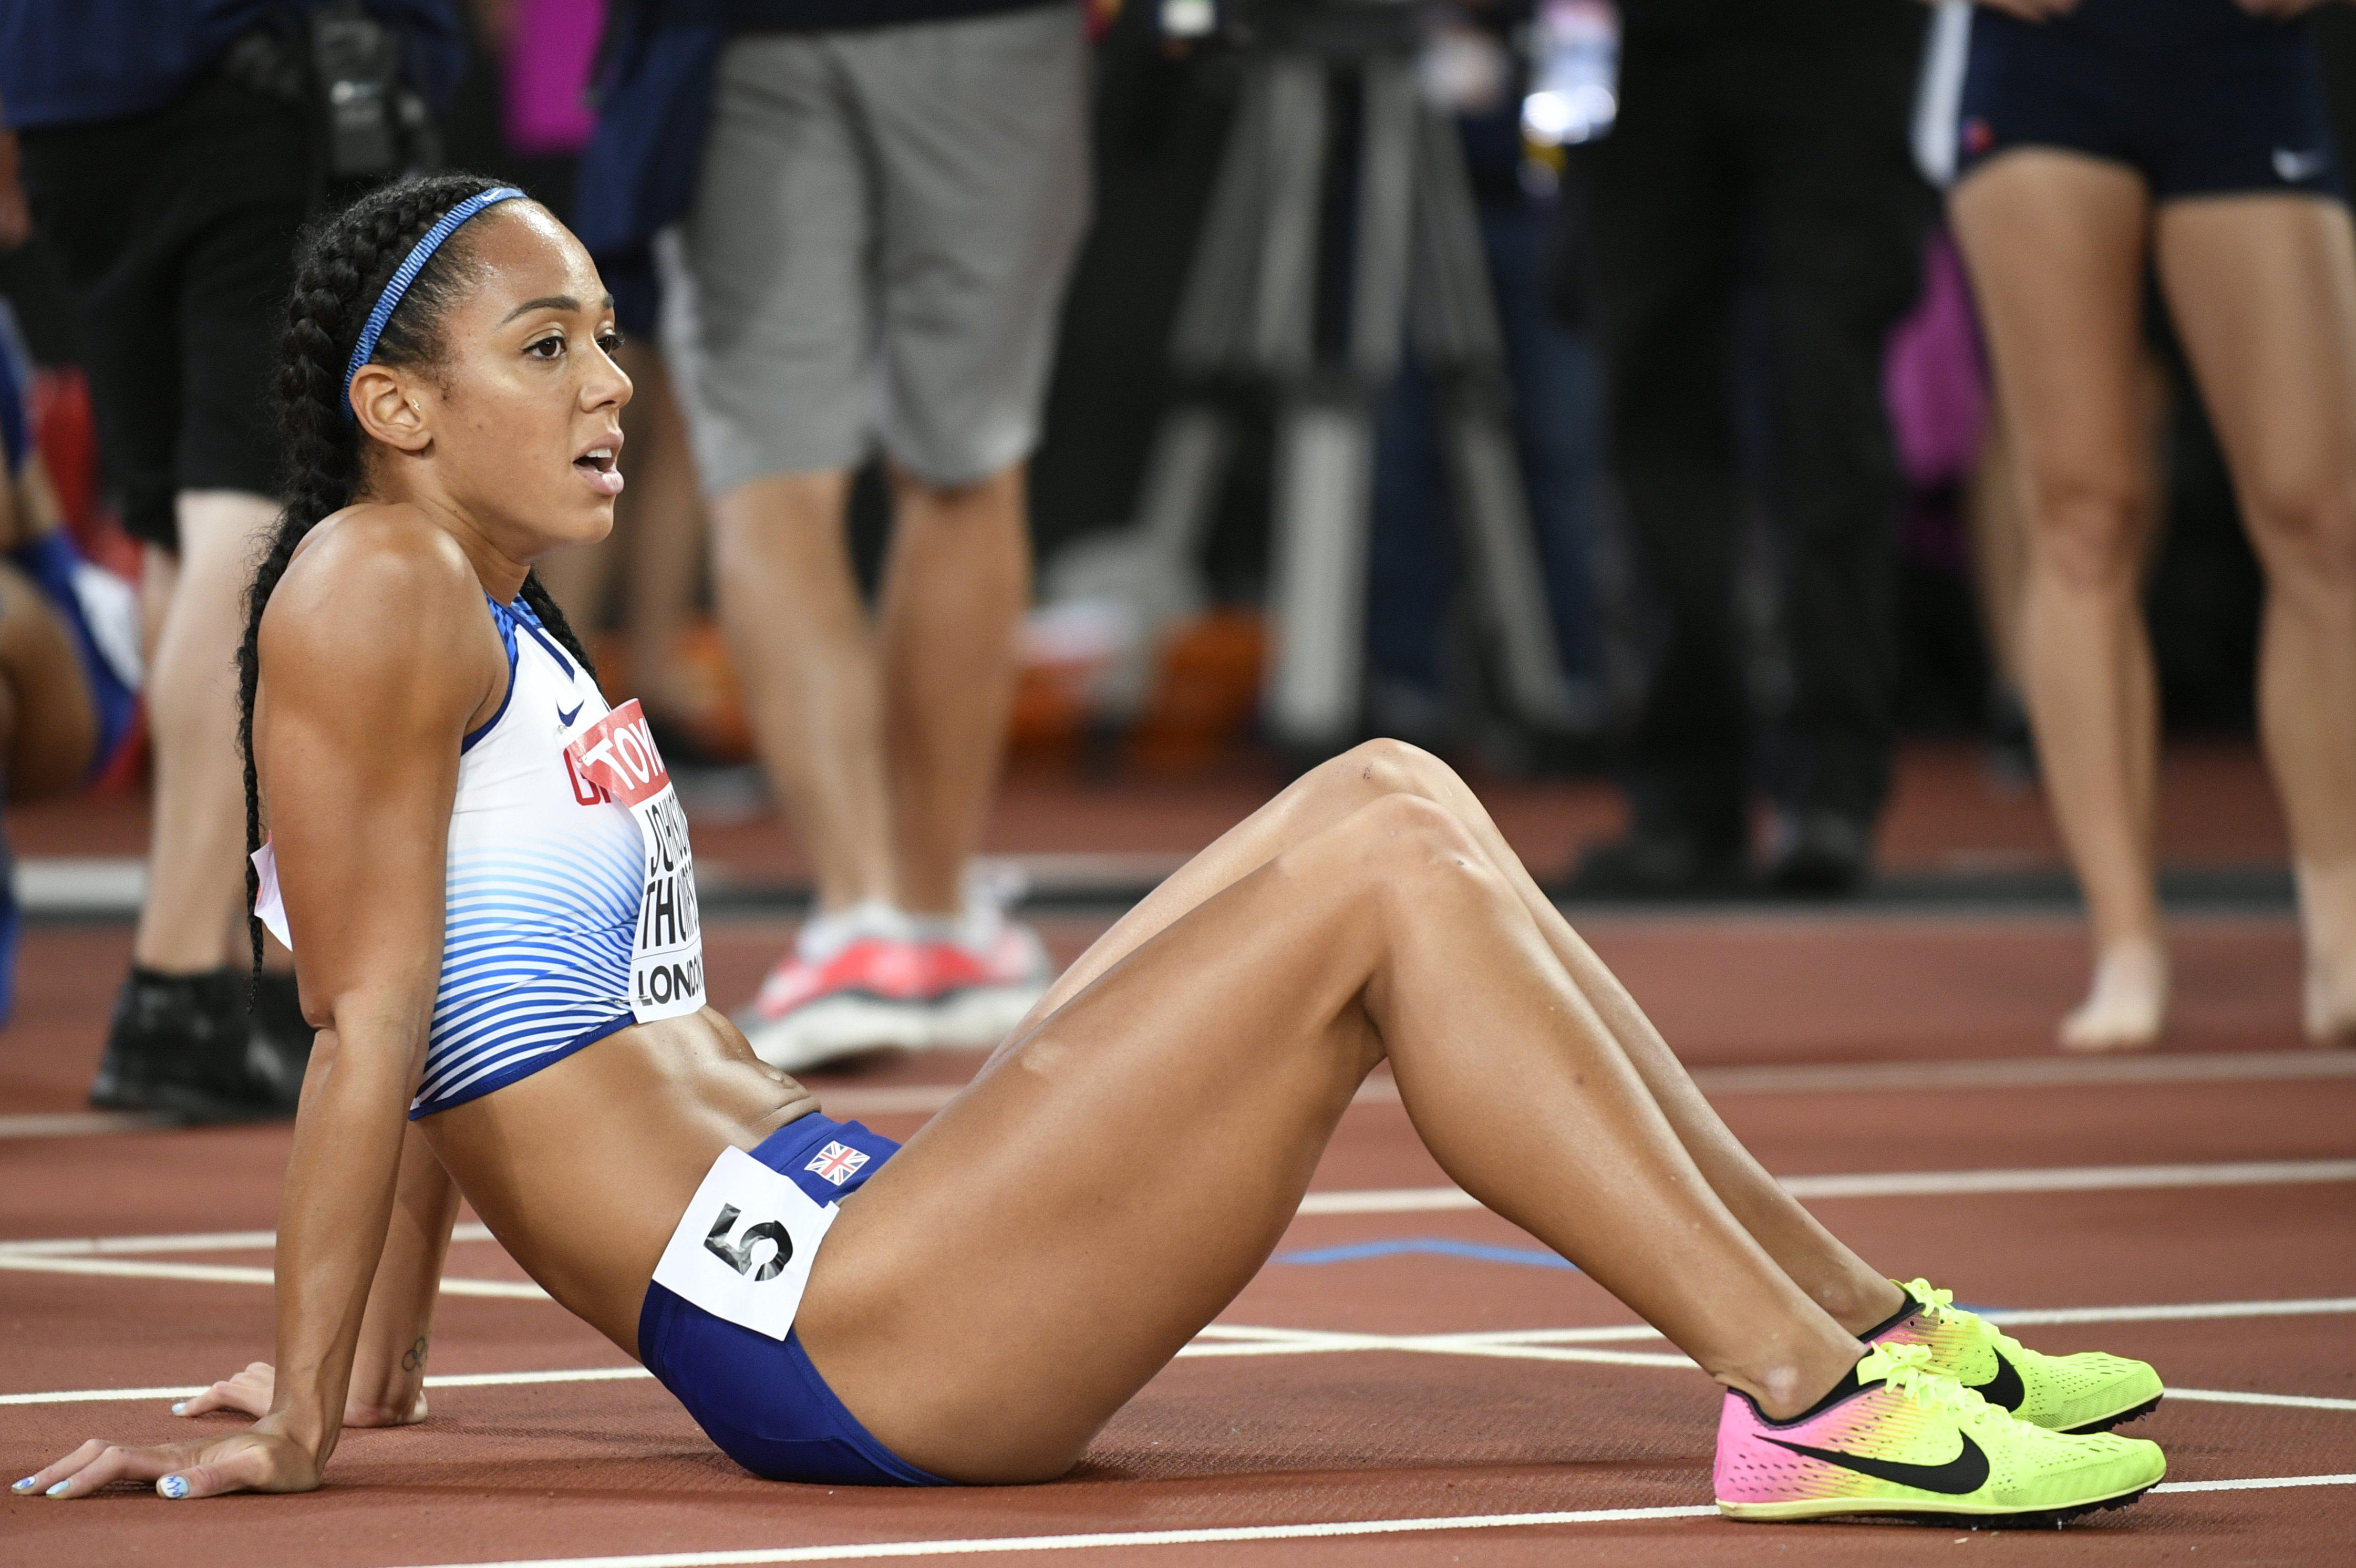 Katarina Johnson-Thompson was left flat out after giving her all in the 800 metres